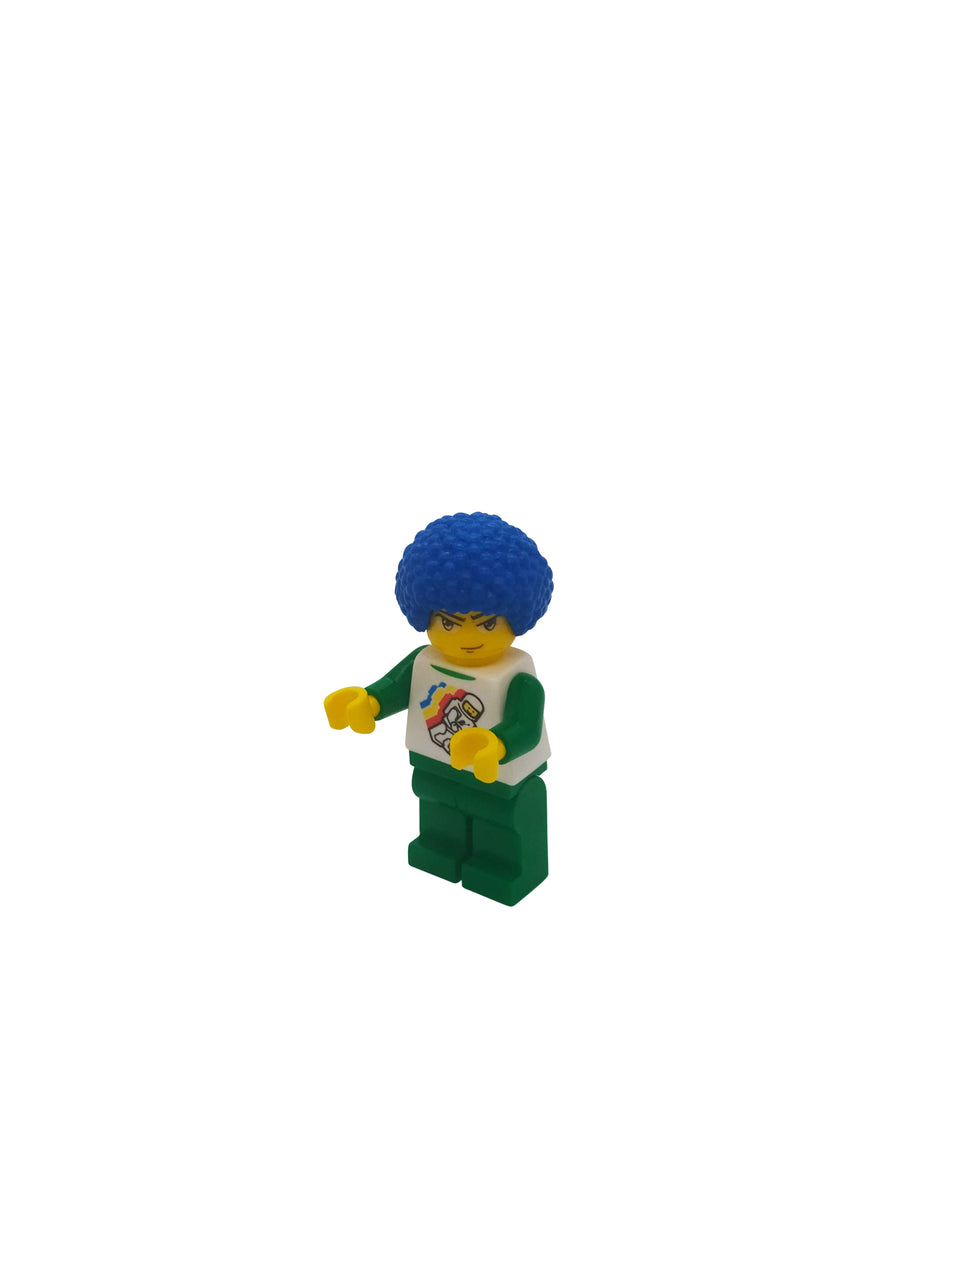 blue hair figure - lego